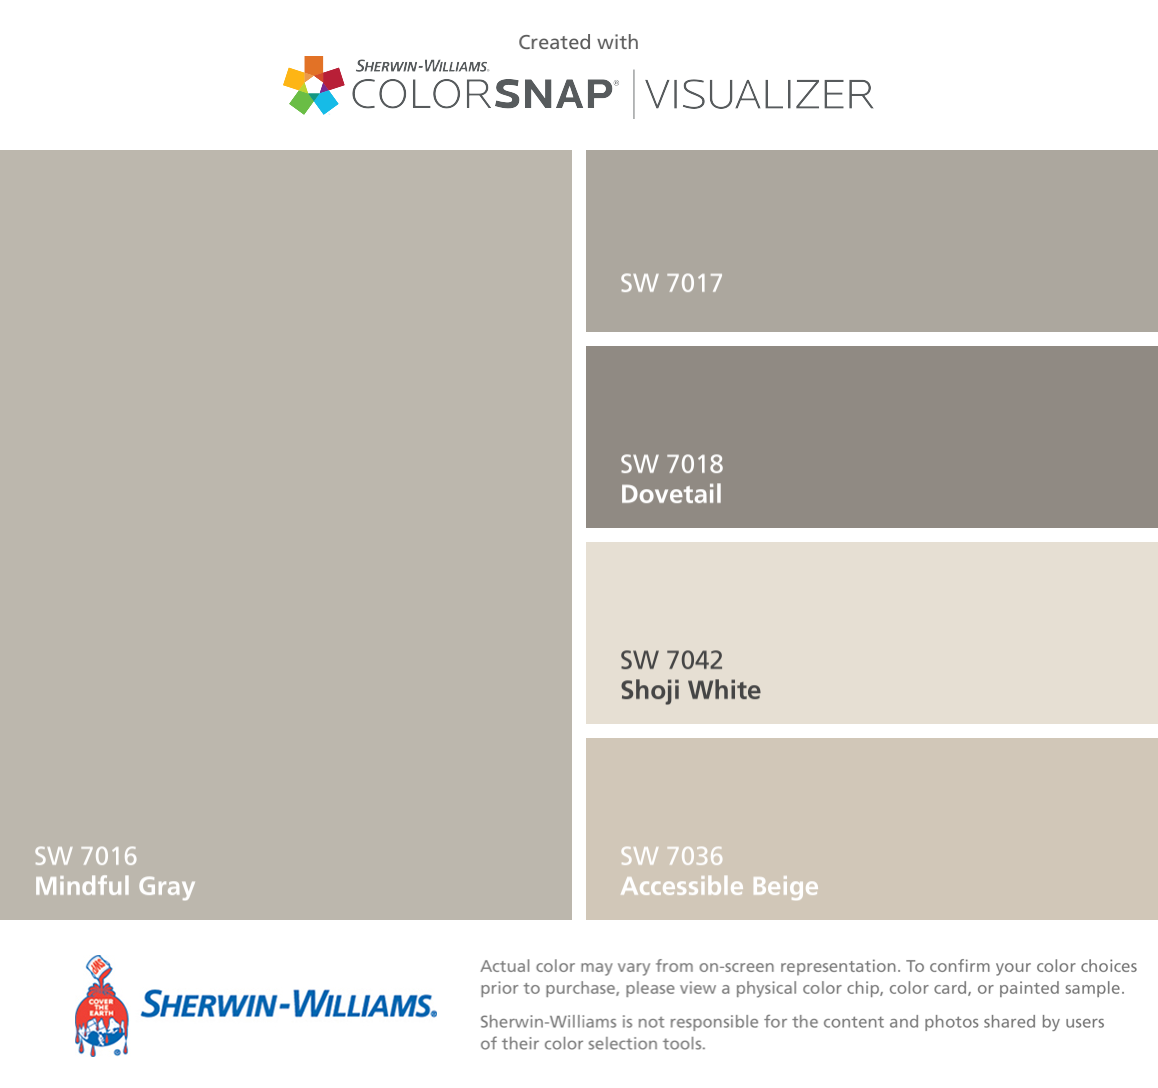 I Found These Colors With Colorsnap Visualizer For Iphone By Sherwin Williams Mindful